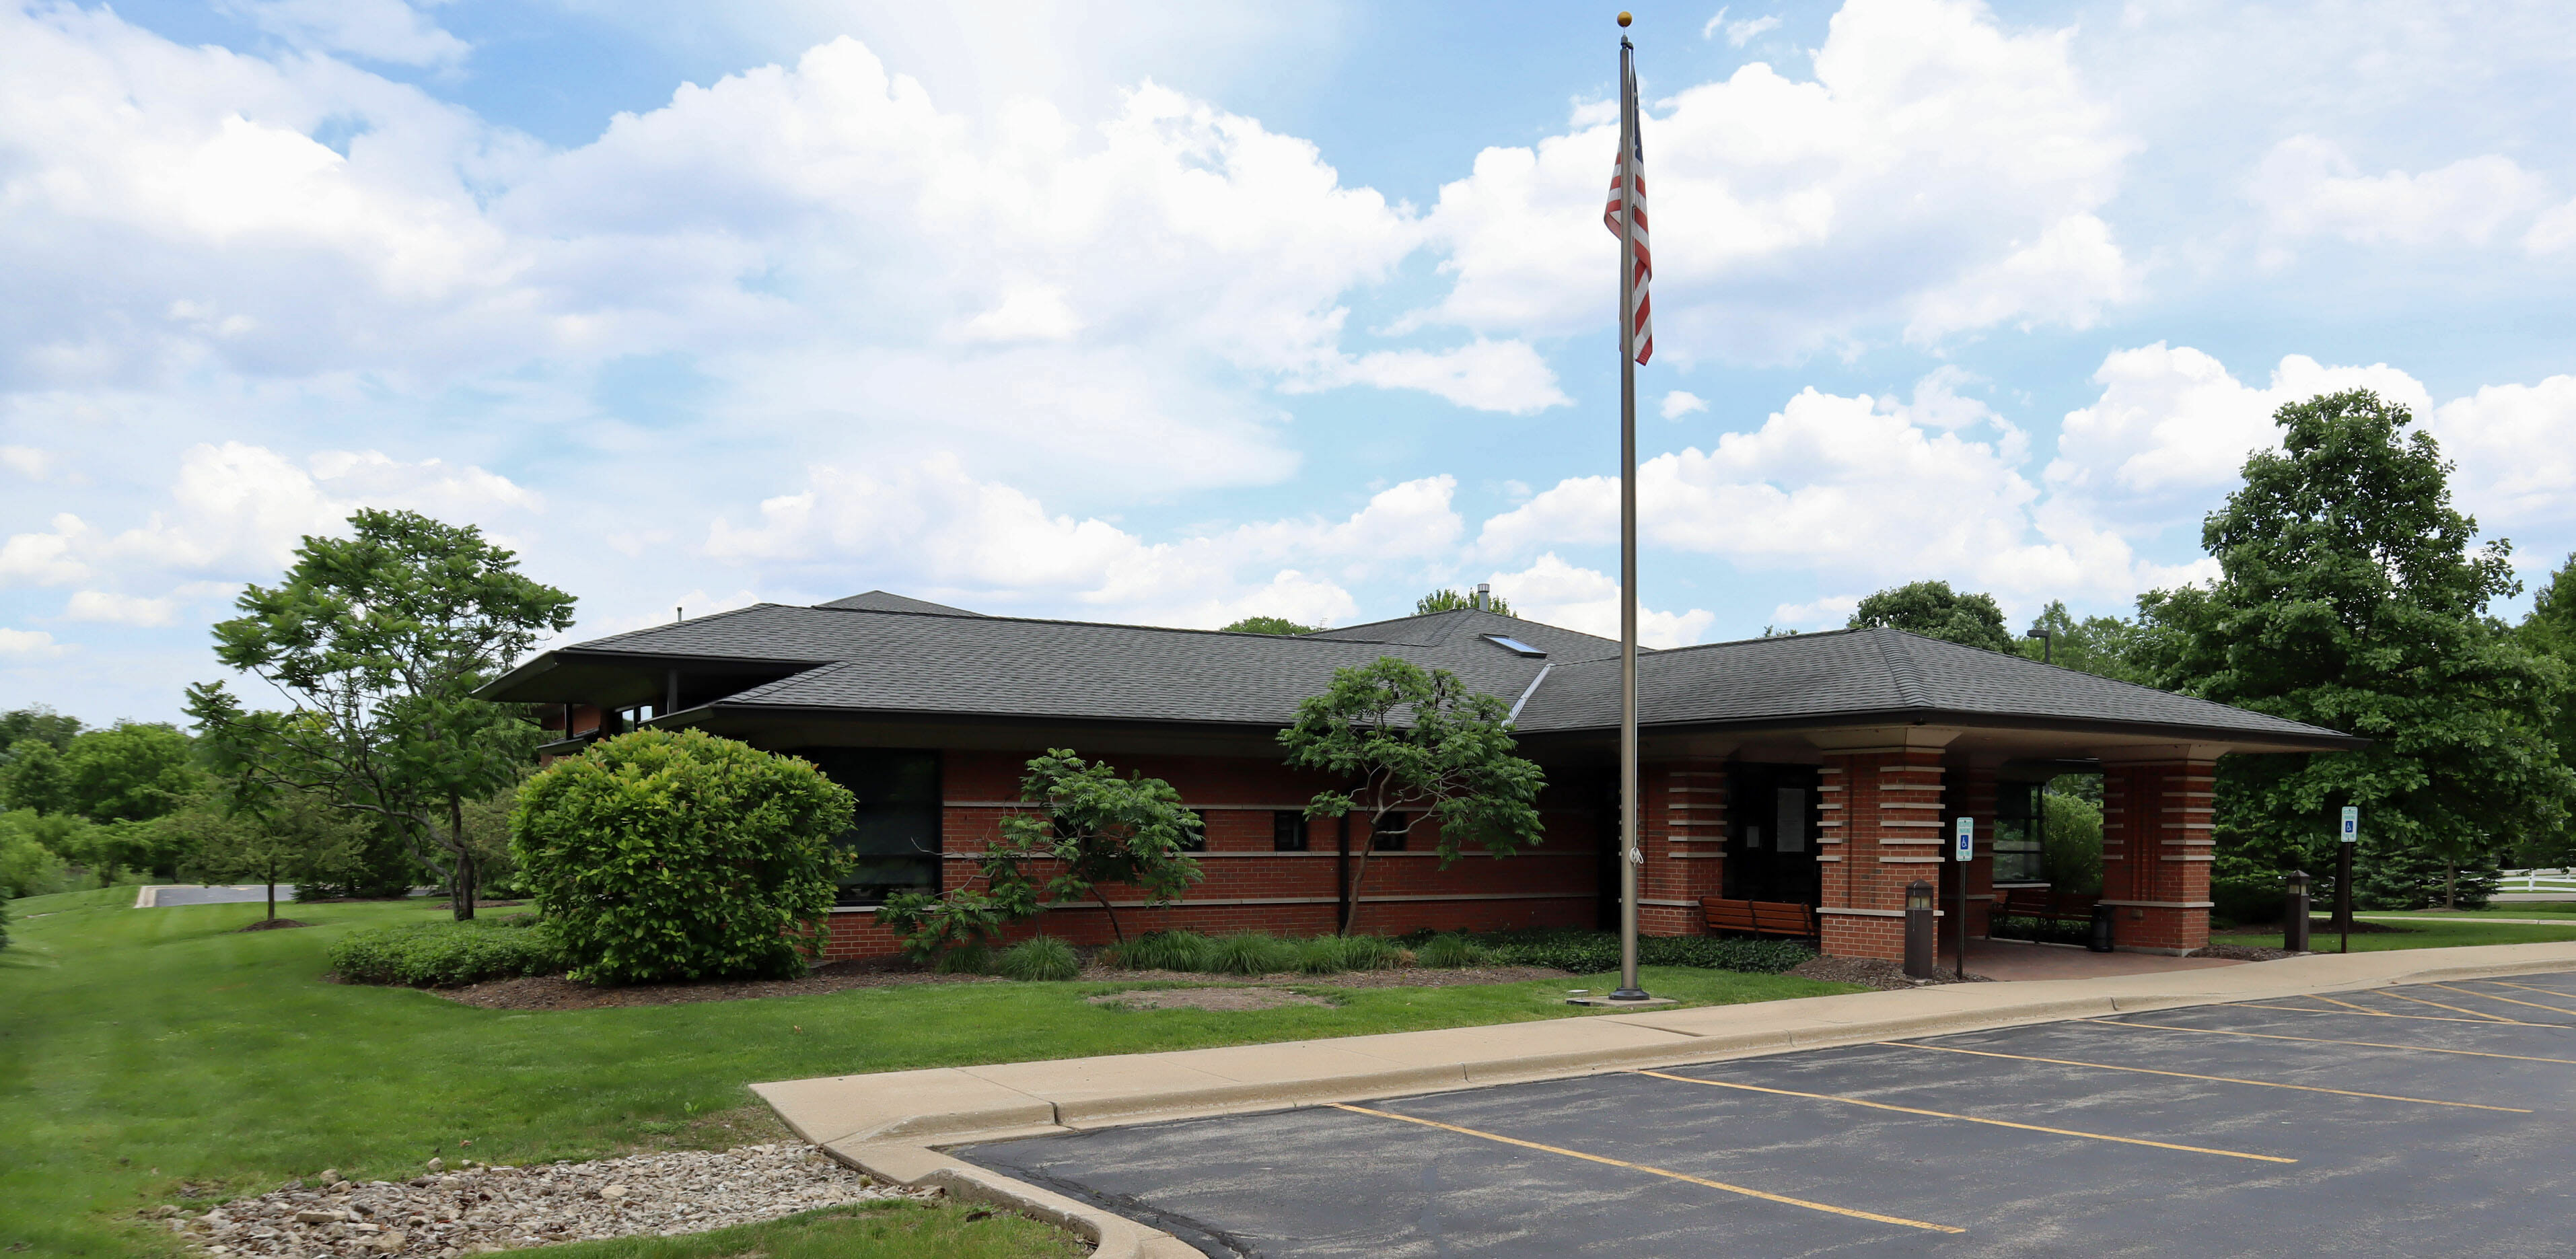 10,624 Sq. Ft. – Commercial 25700 W. Old Grand Ave., Ingleside, IL